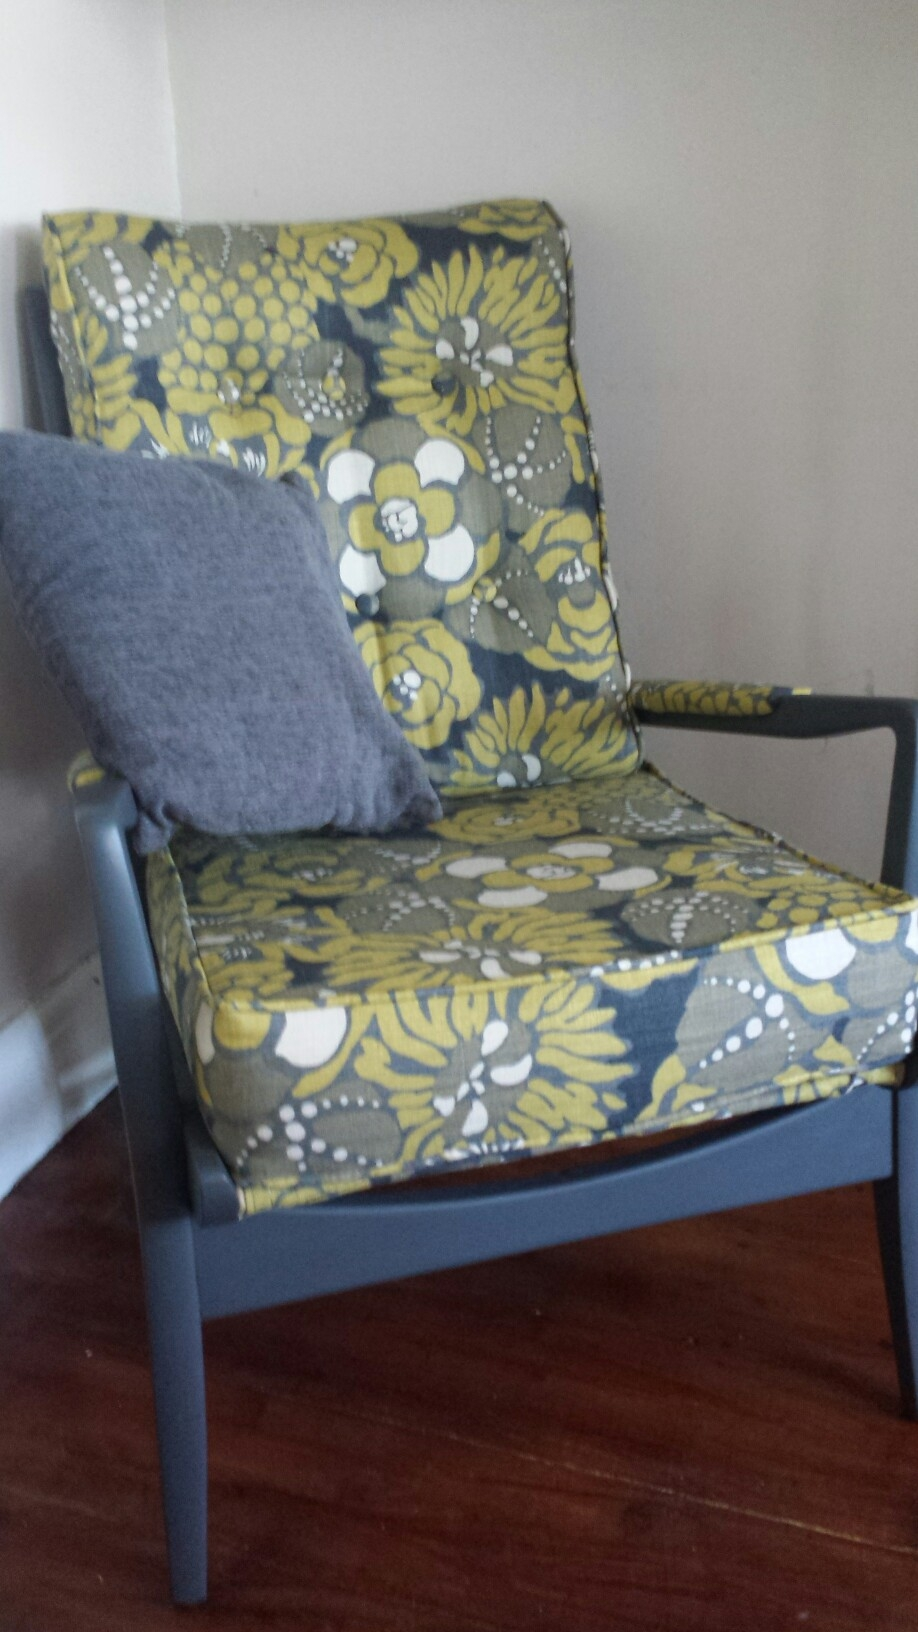 Excellent Widely Used Cintique Chair Covers Inside Grandads Old Cintique Chair Continue Chair Pinterest (View 6 of 15)